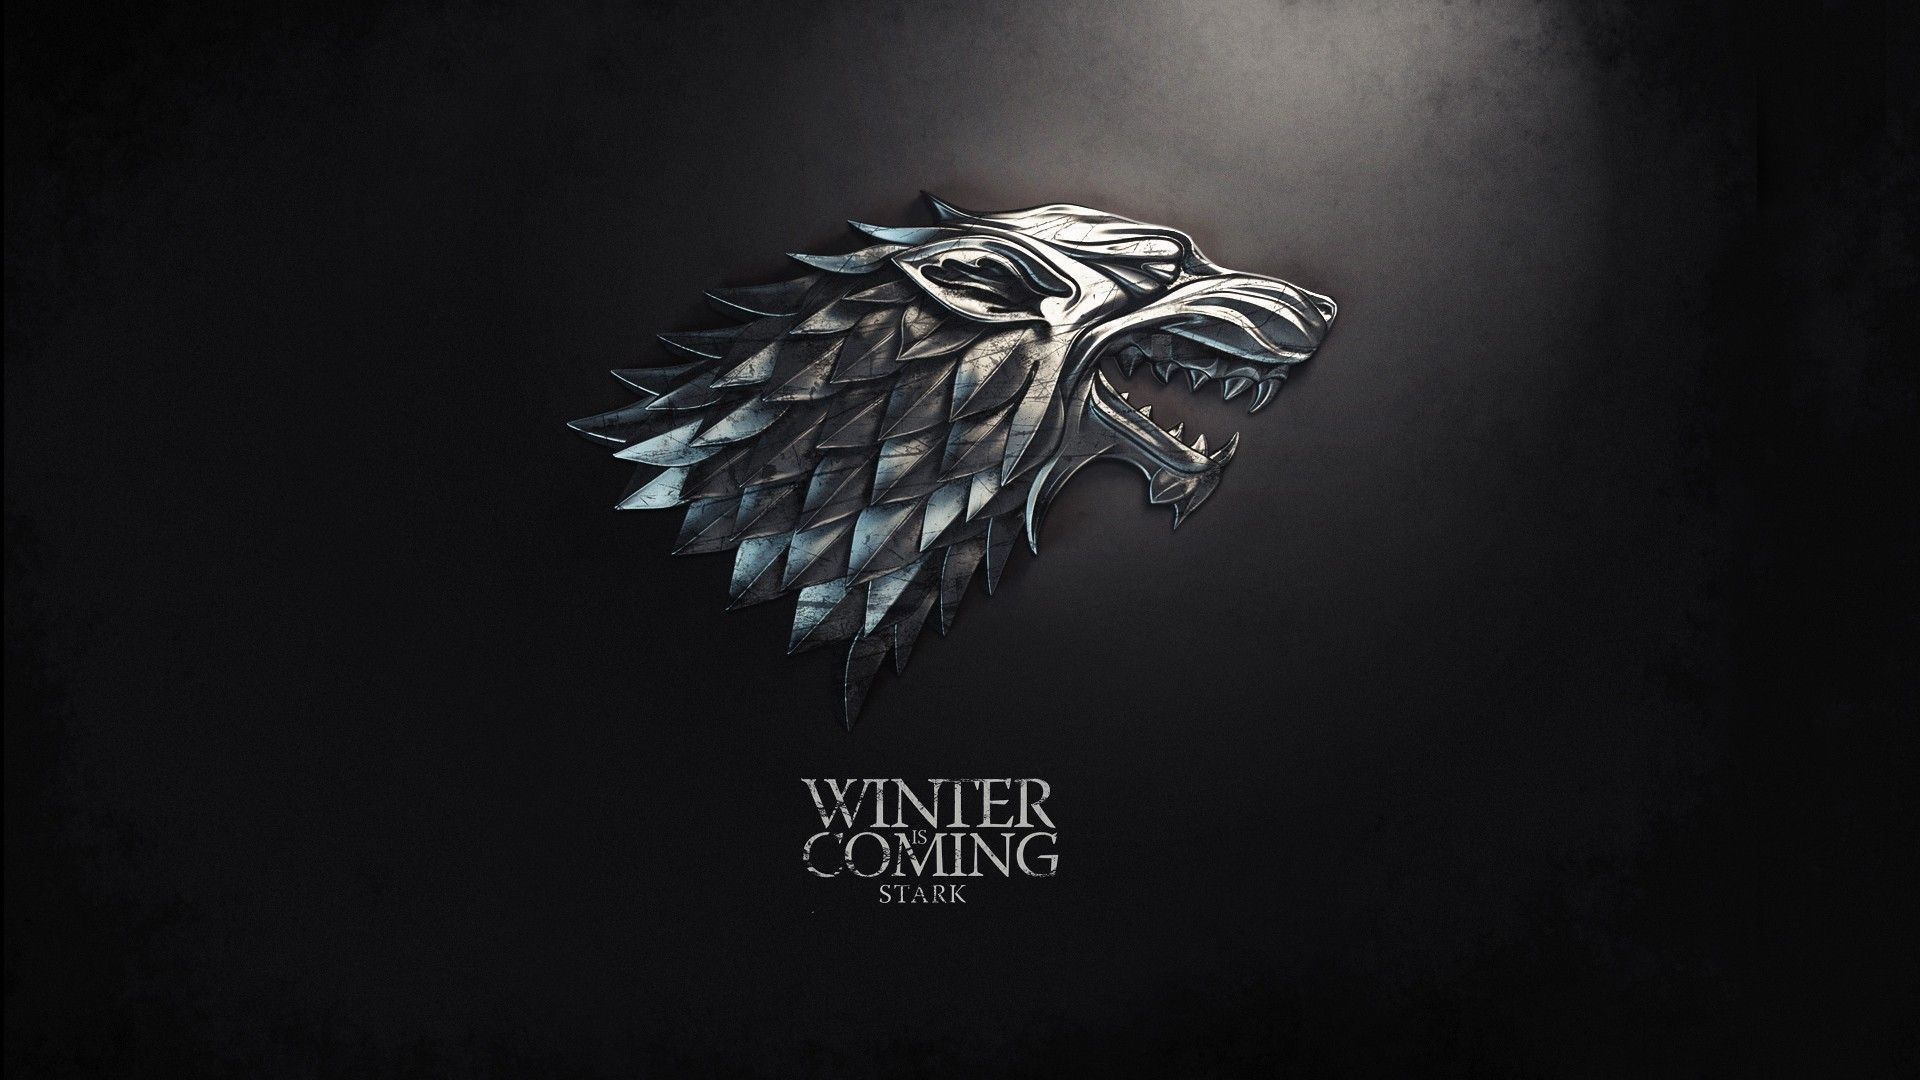 House Stark Wallpapers Top Free House Stark Backgrounds Wallpaperaccess